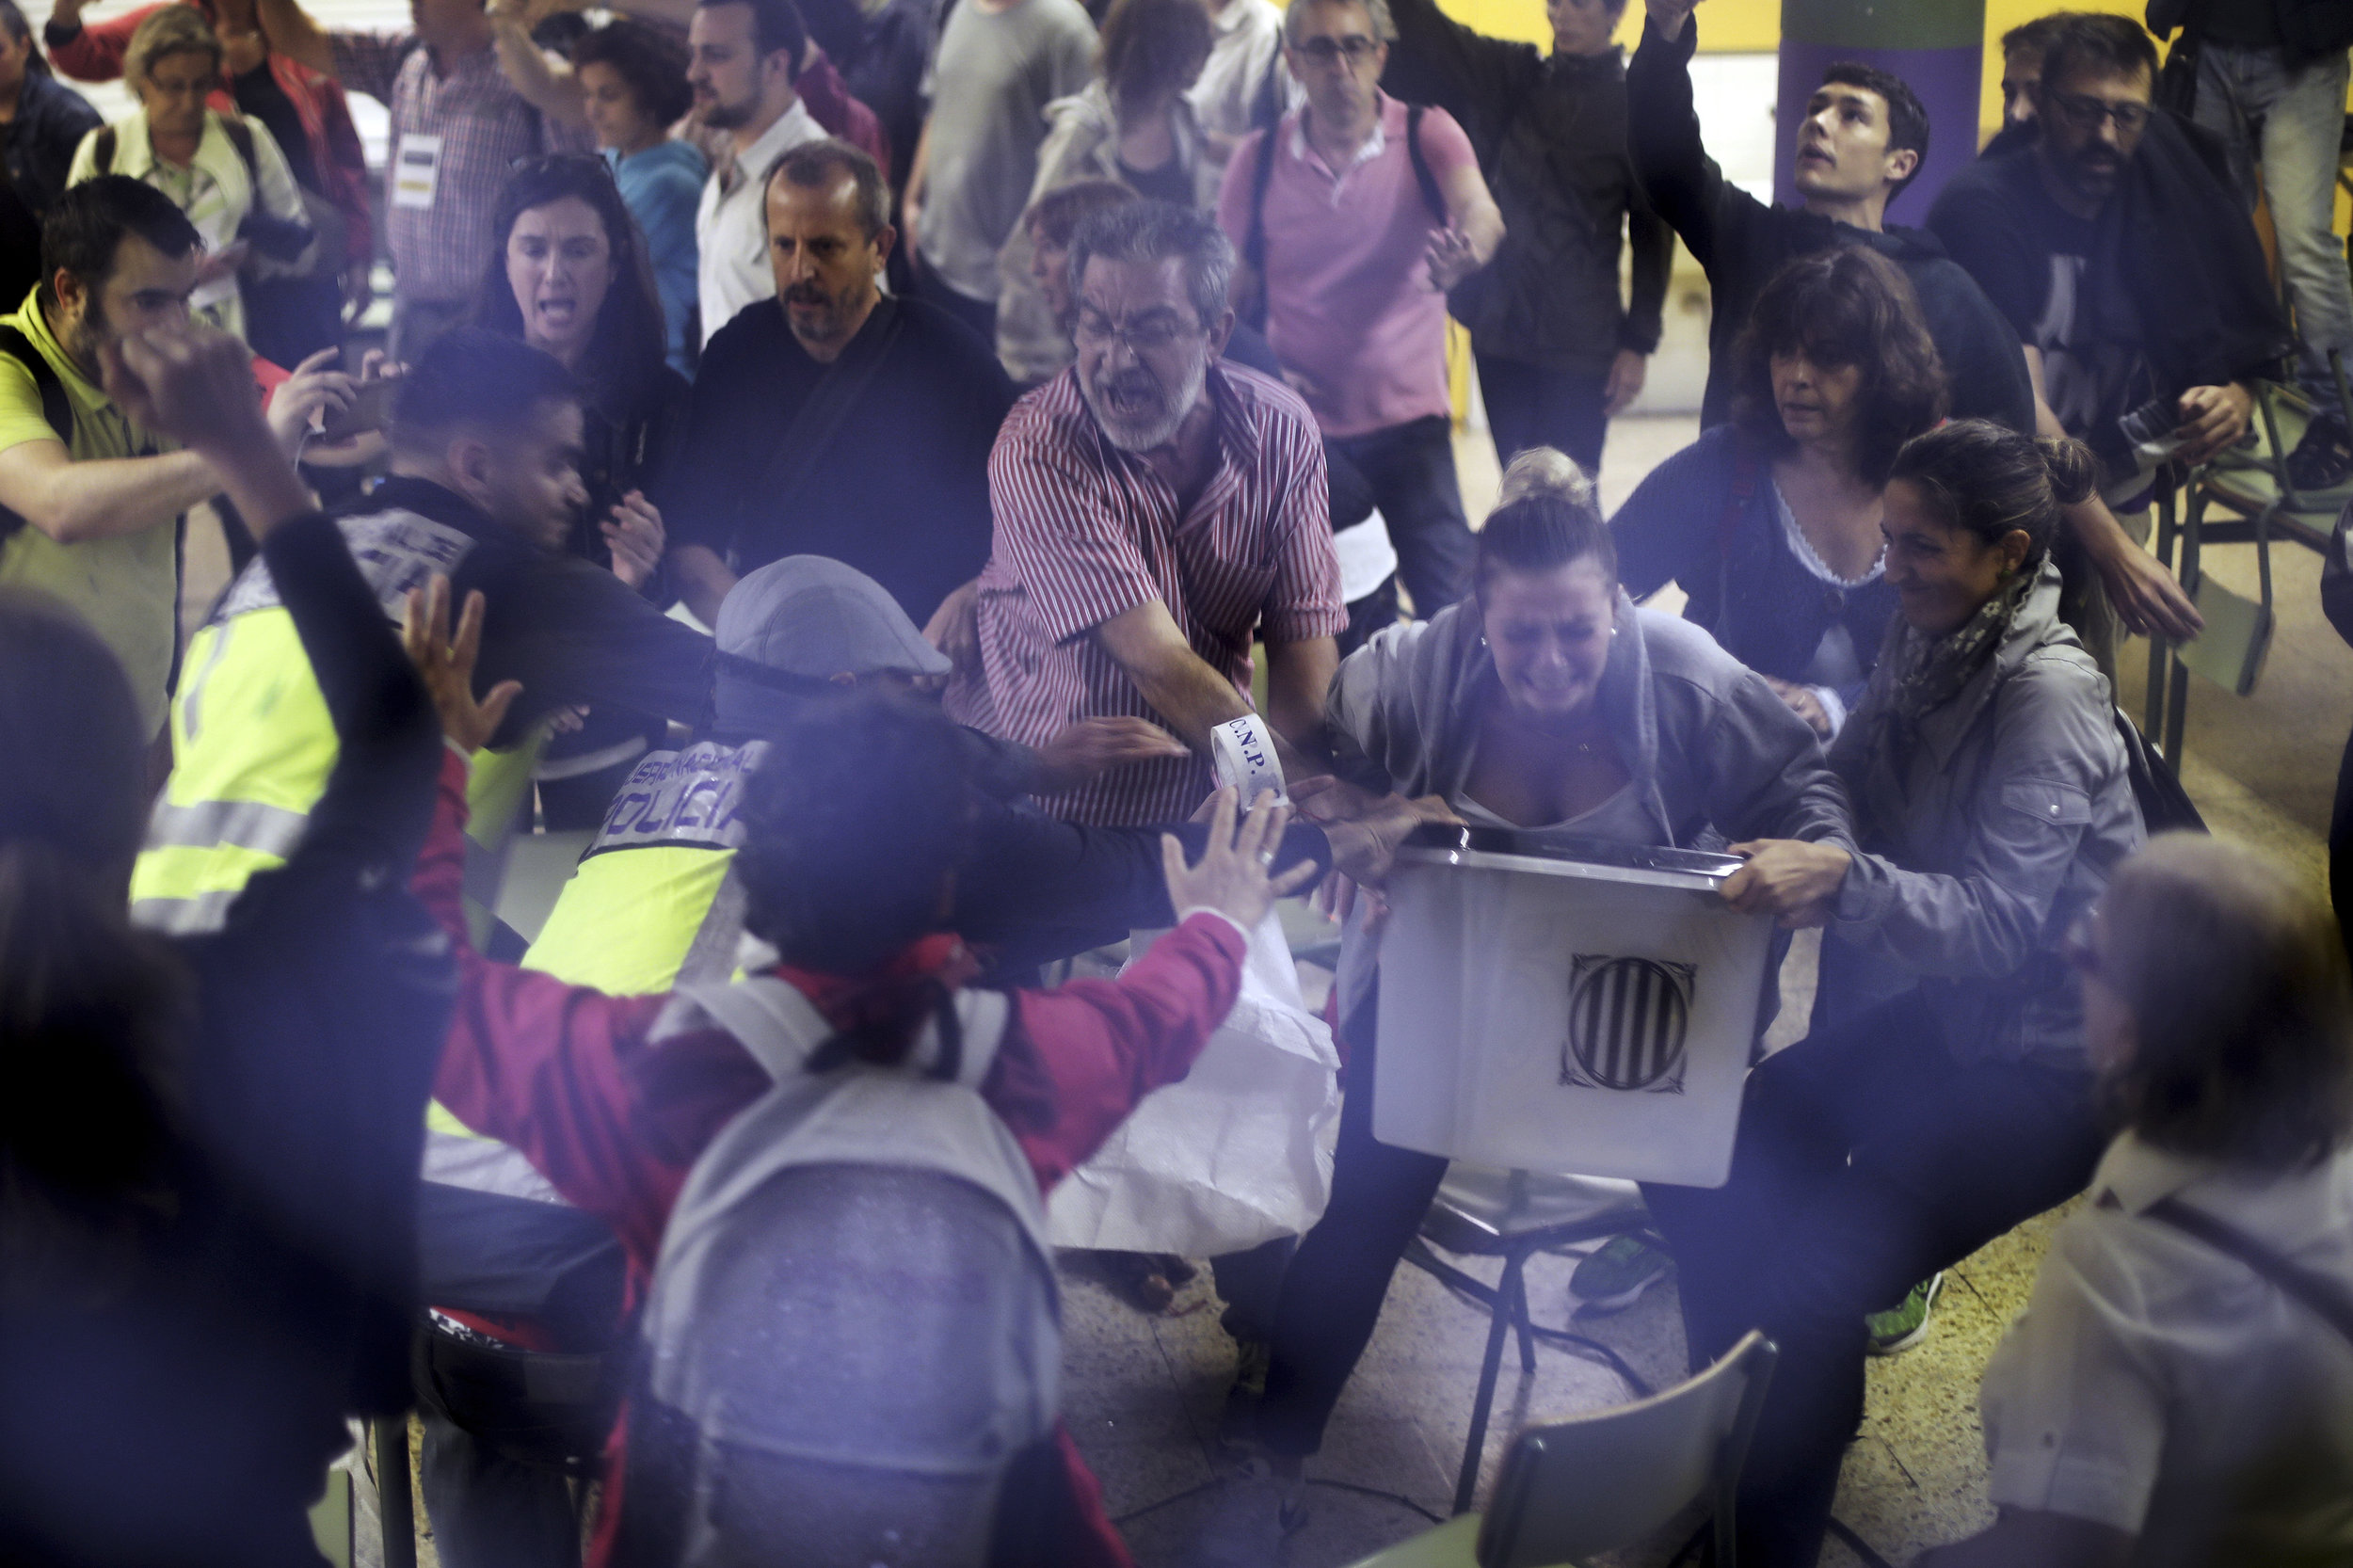 Spanish National Police officers in plain clothes try to snatch a ballot box from polling station officials at the Ramon Llull school assigned to be a polling station by the Catalan government in Barcelona, Spain, early Sunday, Oct. 1, 2017. (AP Photo/Manu Brabo)